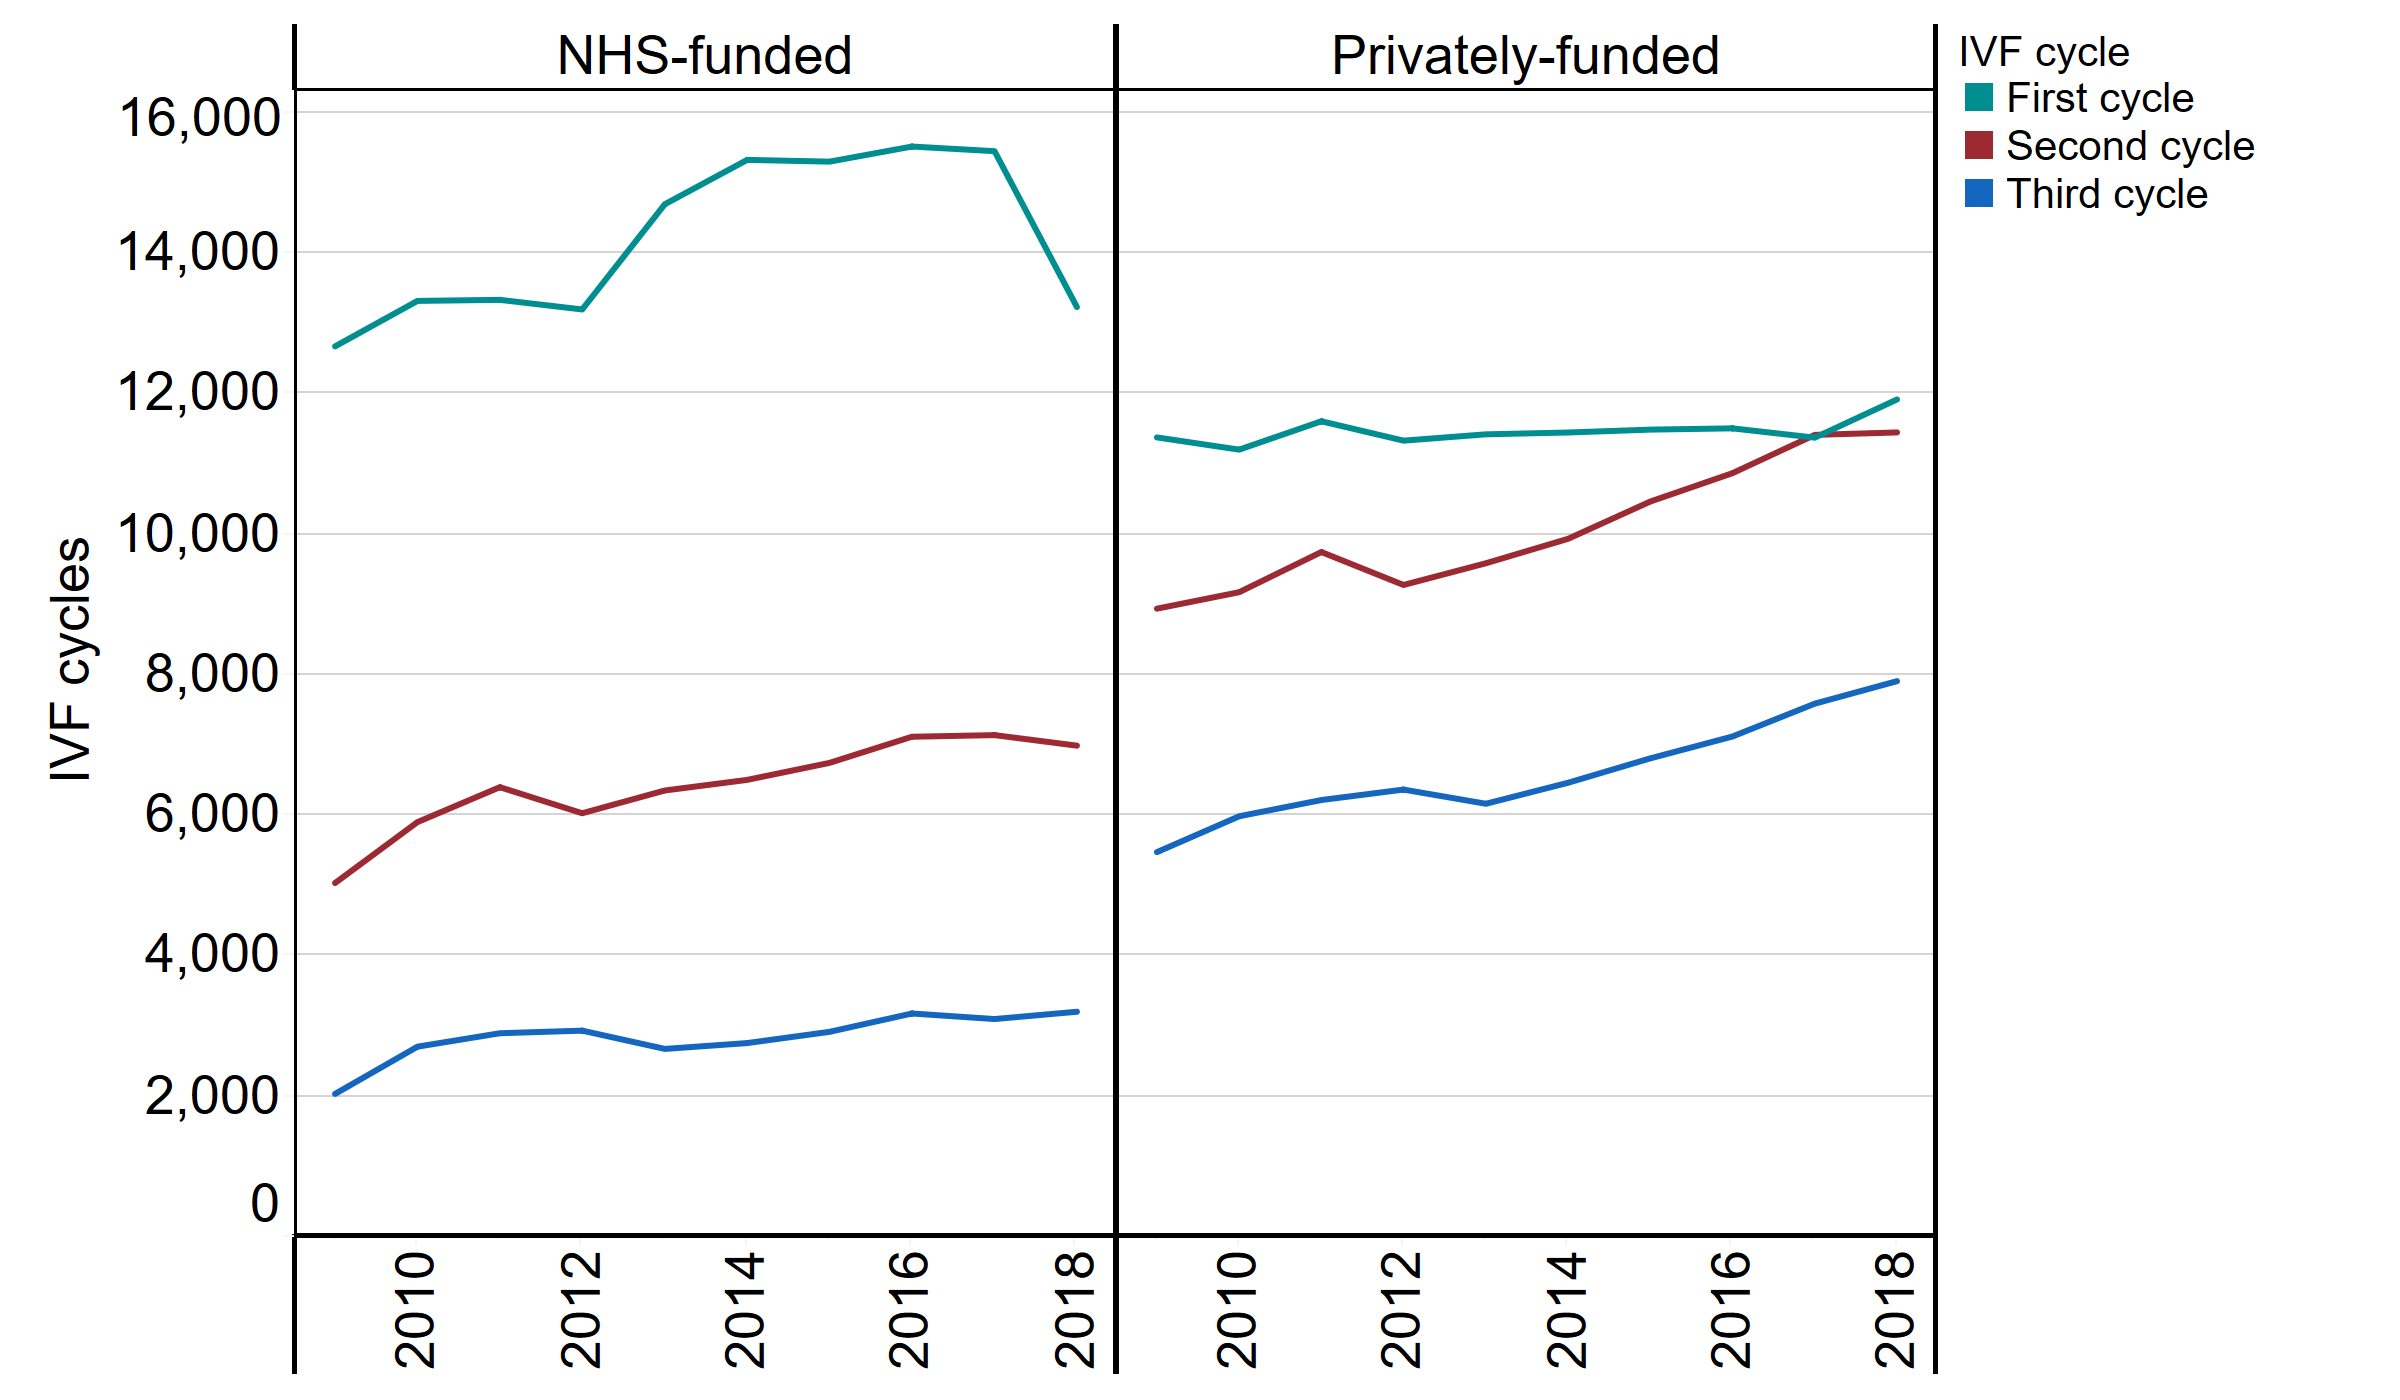 This line chart shows number of first, second and third IVF cycles by funding type (NHS or private). First IVF cycles have mainly been funded by the NHS, but this number has decreased from almost 16,000 cycles to 13,000 cycles from 2017 to 2018. Although first cycle NHS cycles are decreasing, there has not been much change in privately-funded first cycles. Second and third IVF cycles have mainly been funded privately and this has been steadily increasing since 2013.